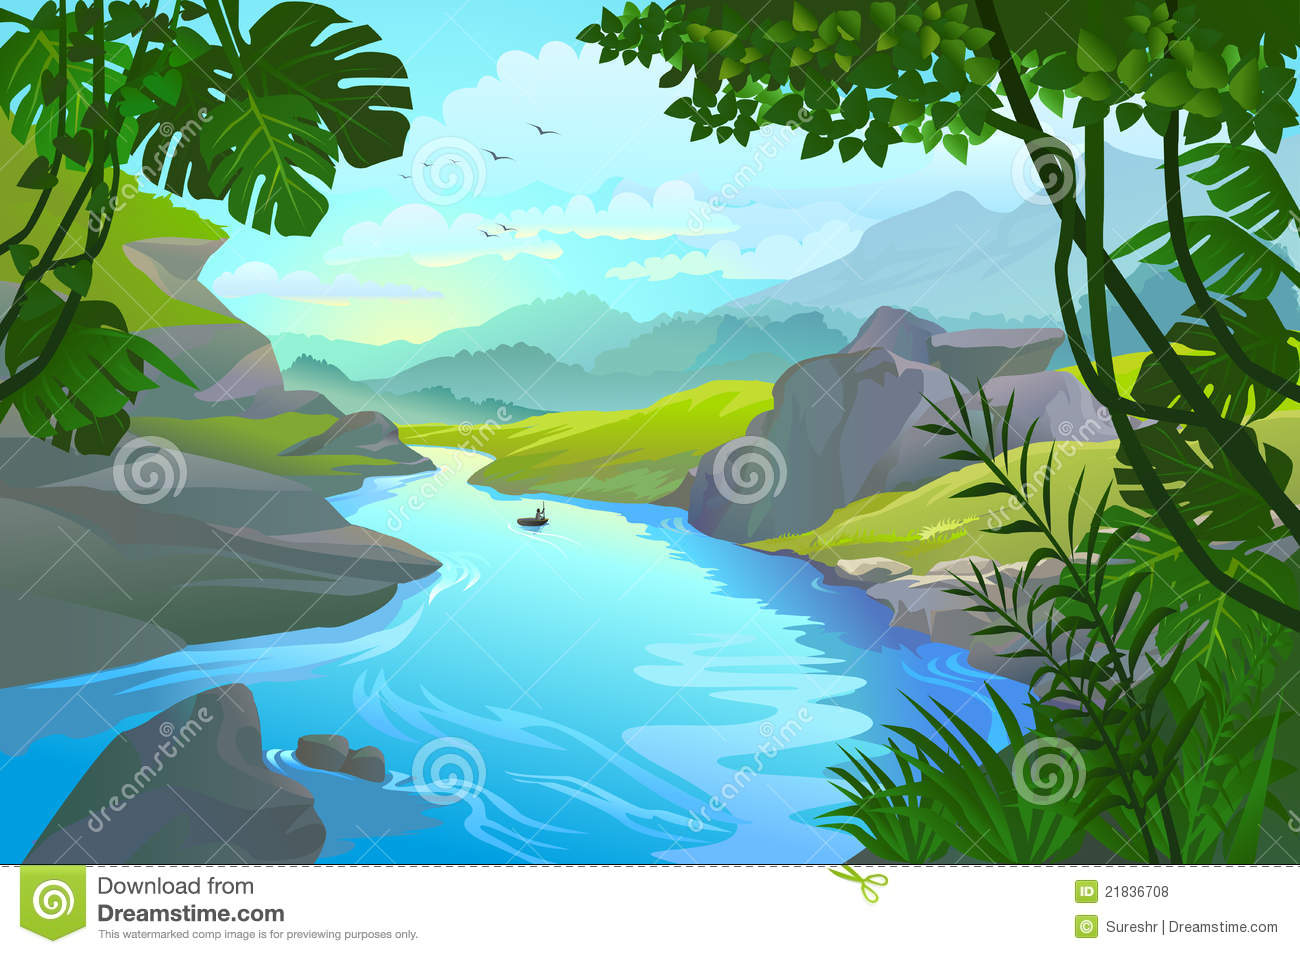 River clipart mountain river #4